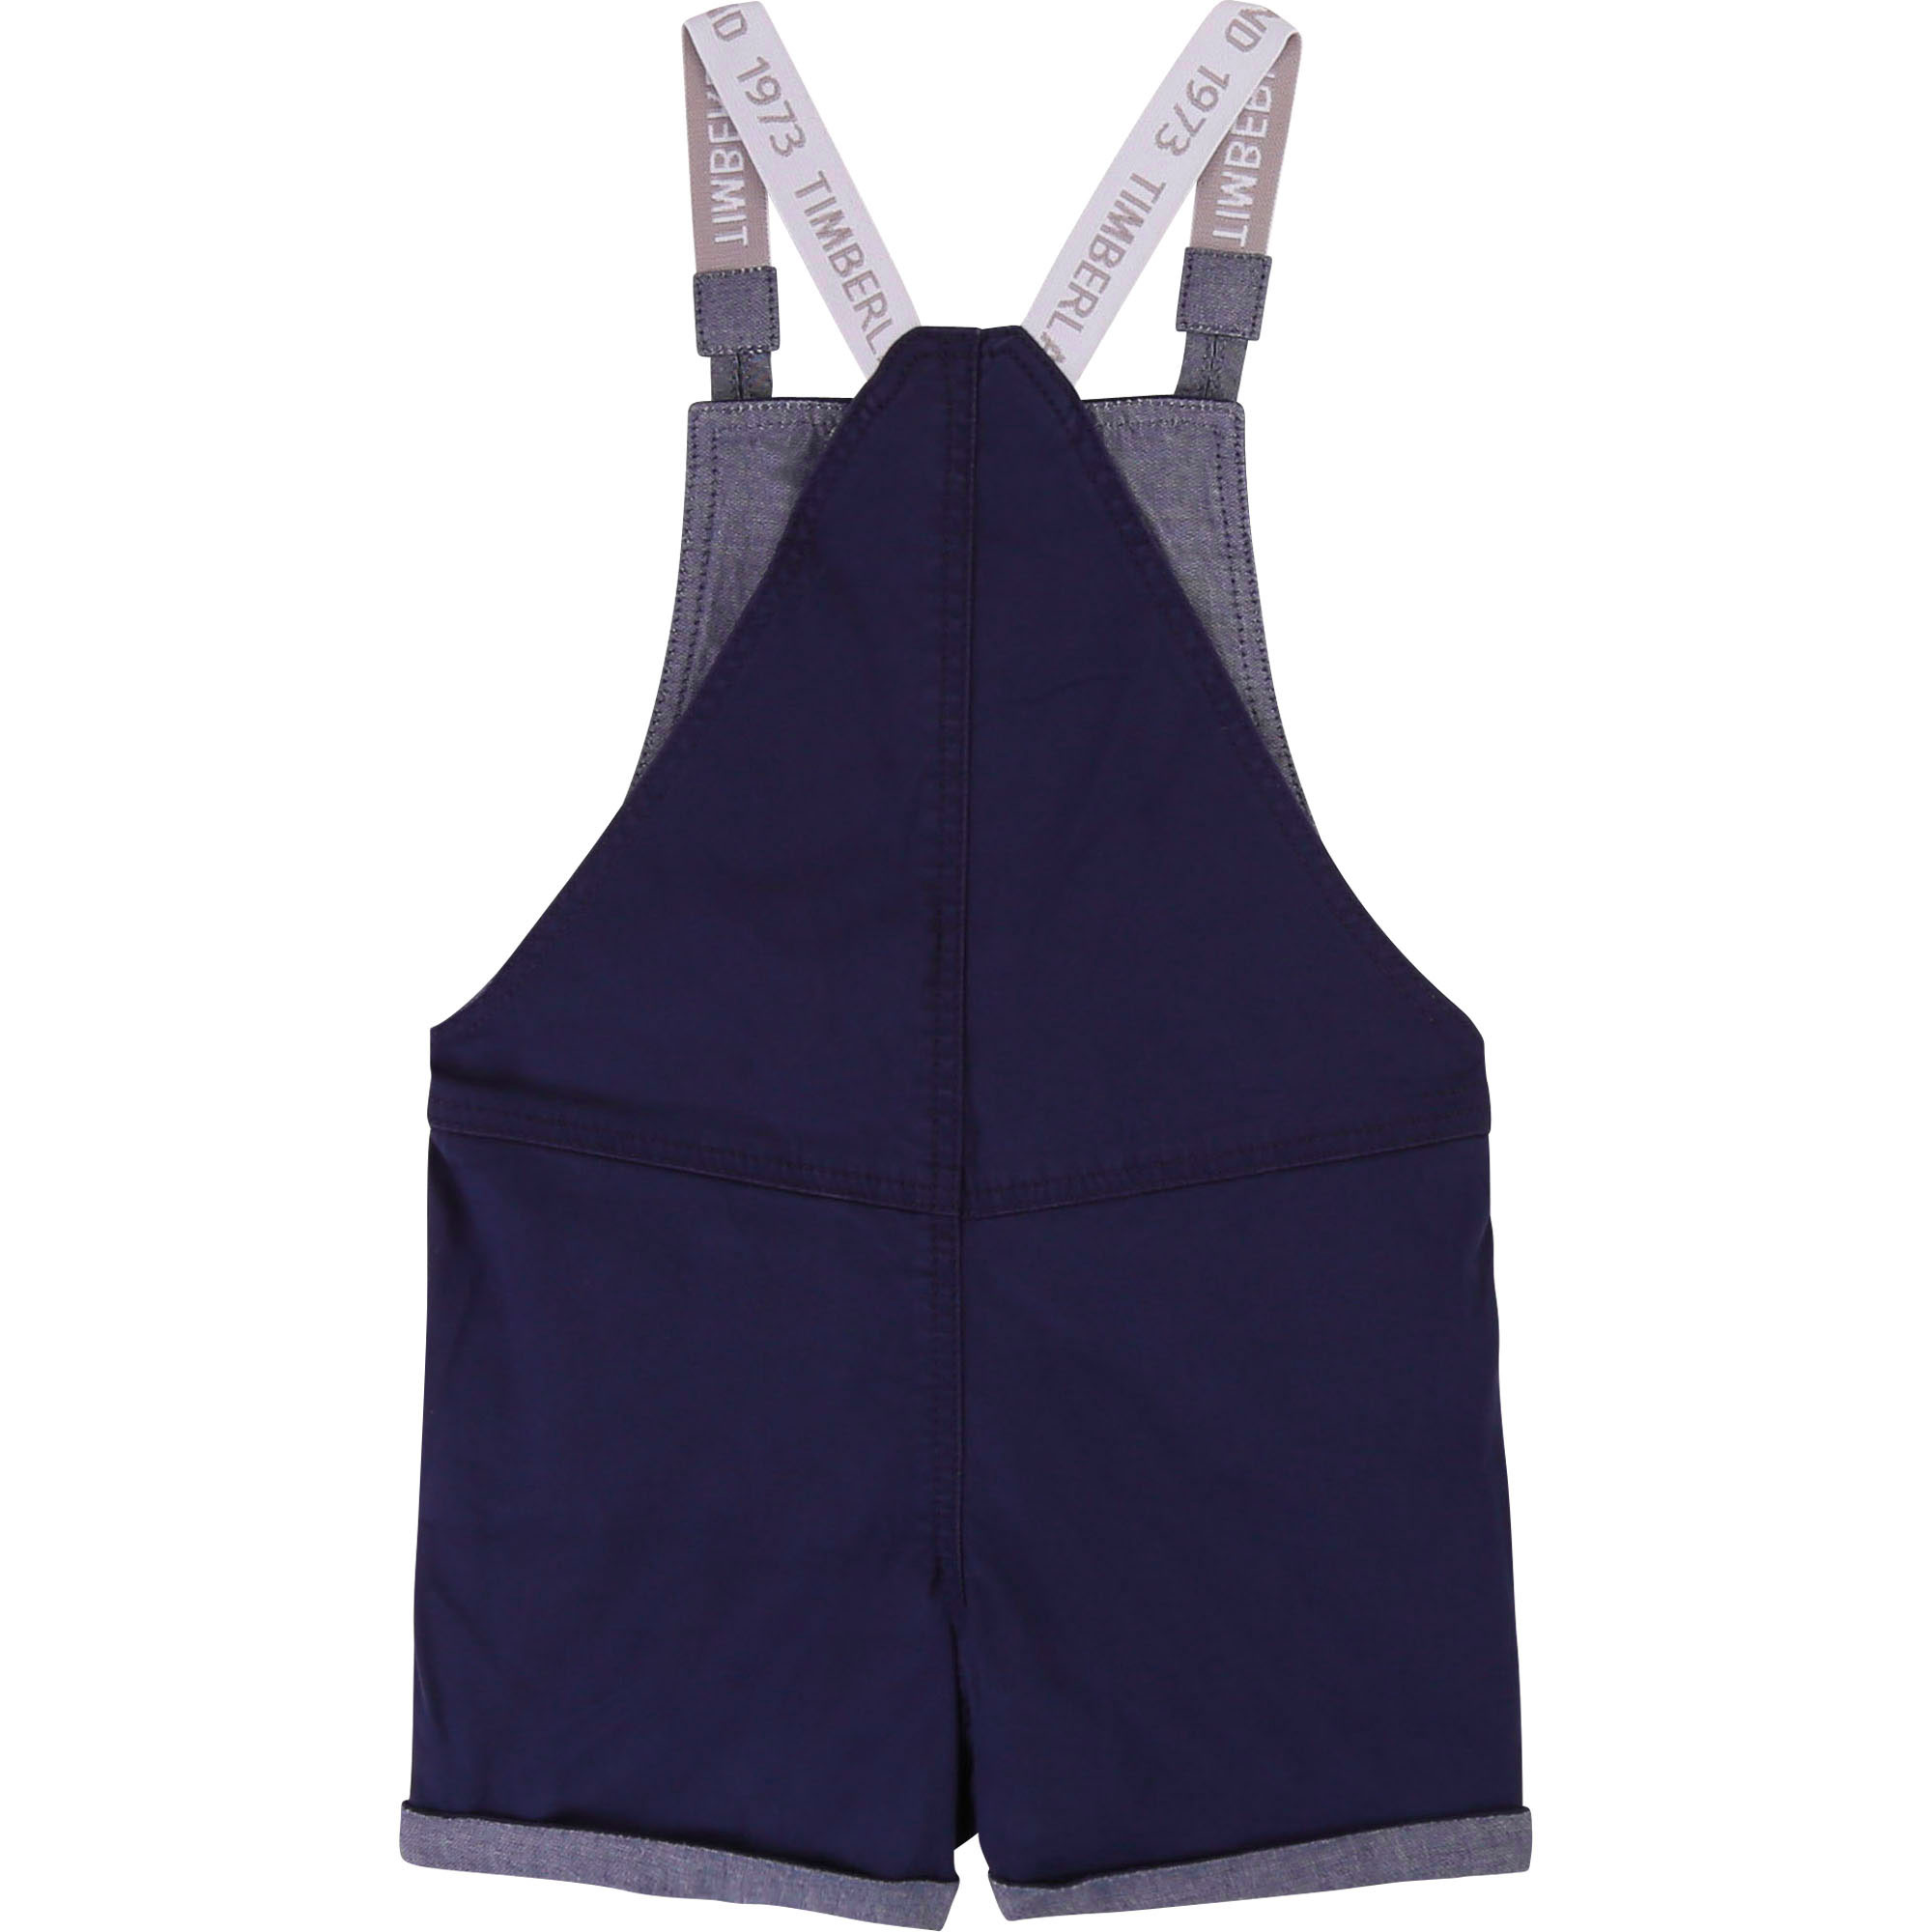 Bleached twill dungaree shorts TIMBERLAND for BOY